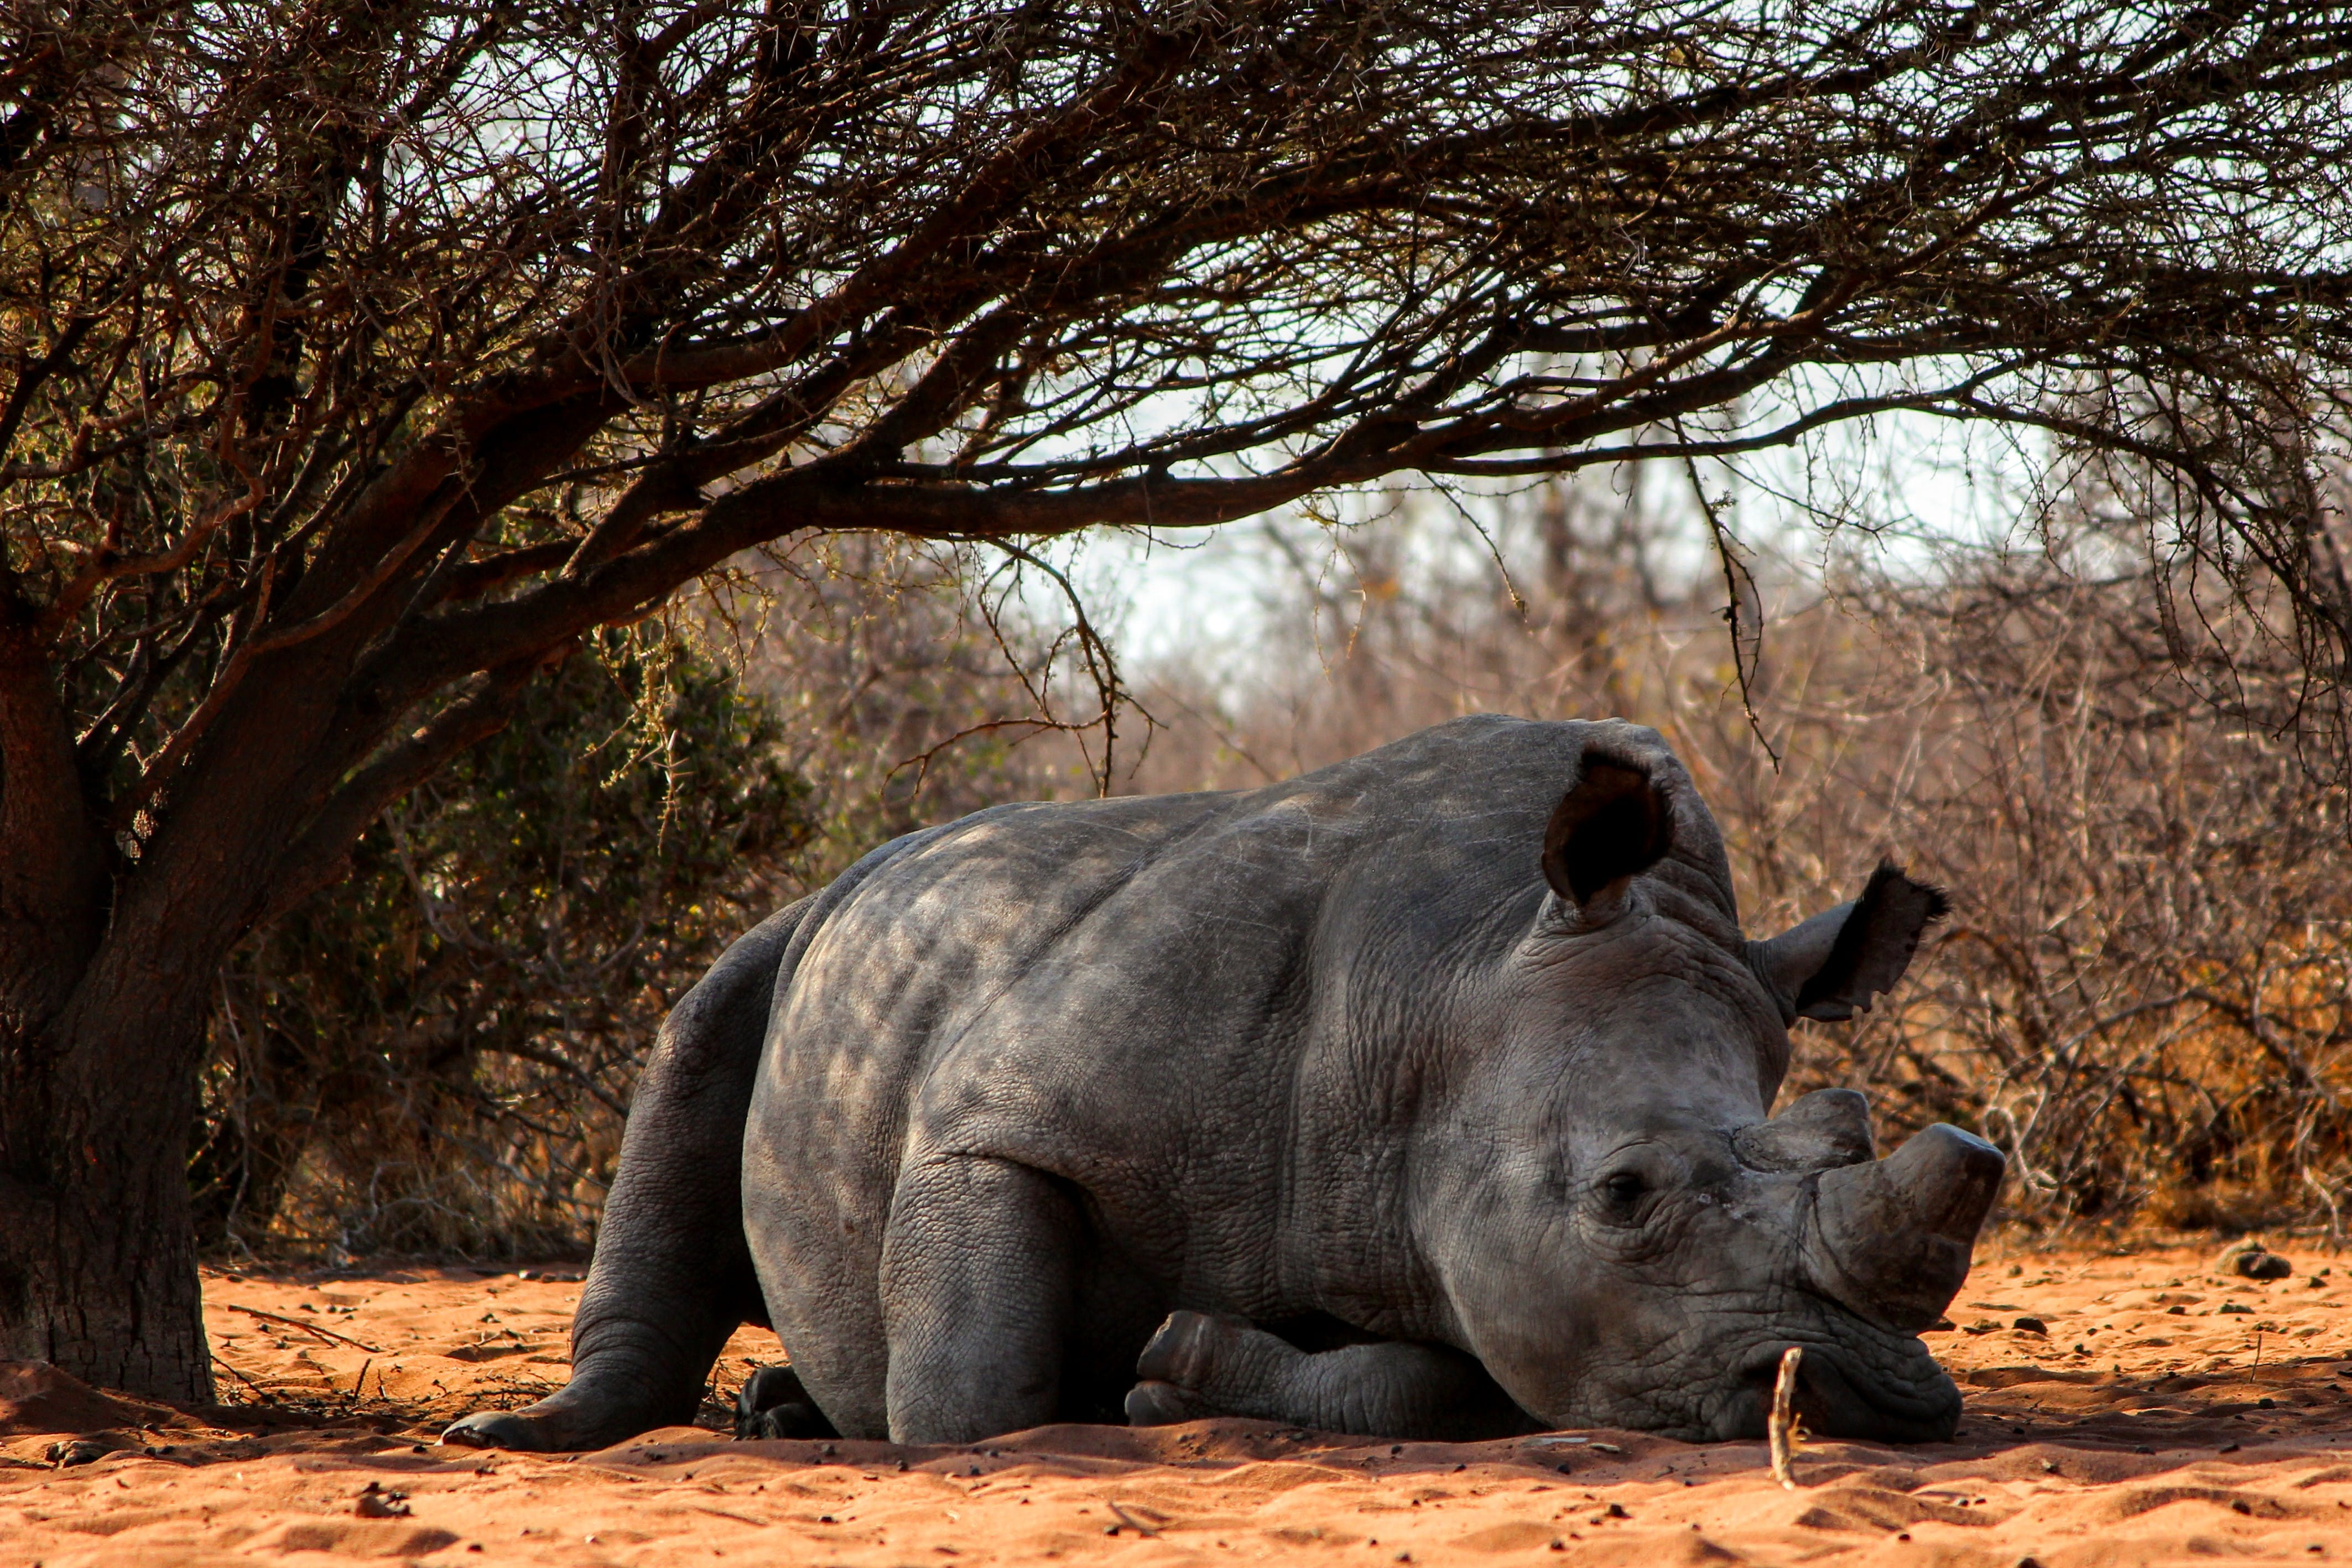 Rhino Lying on Ground Near Tree